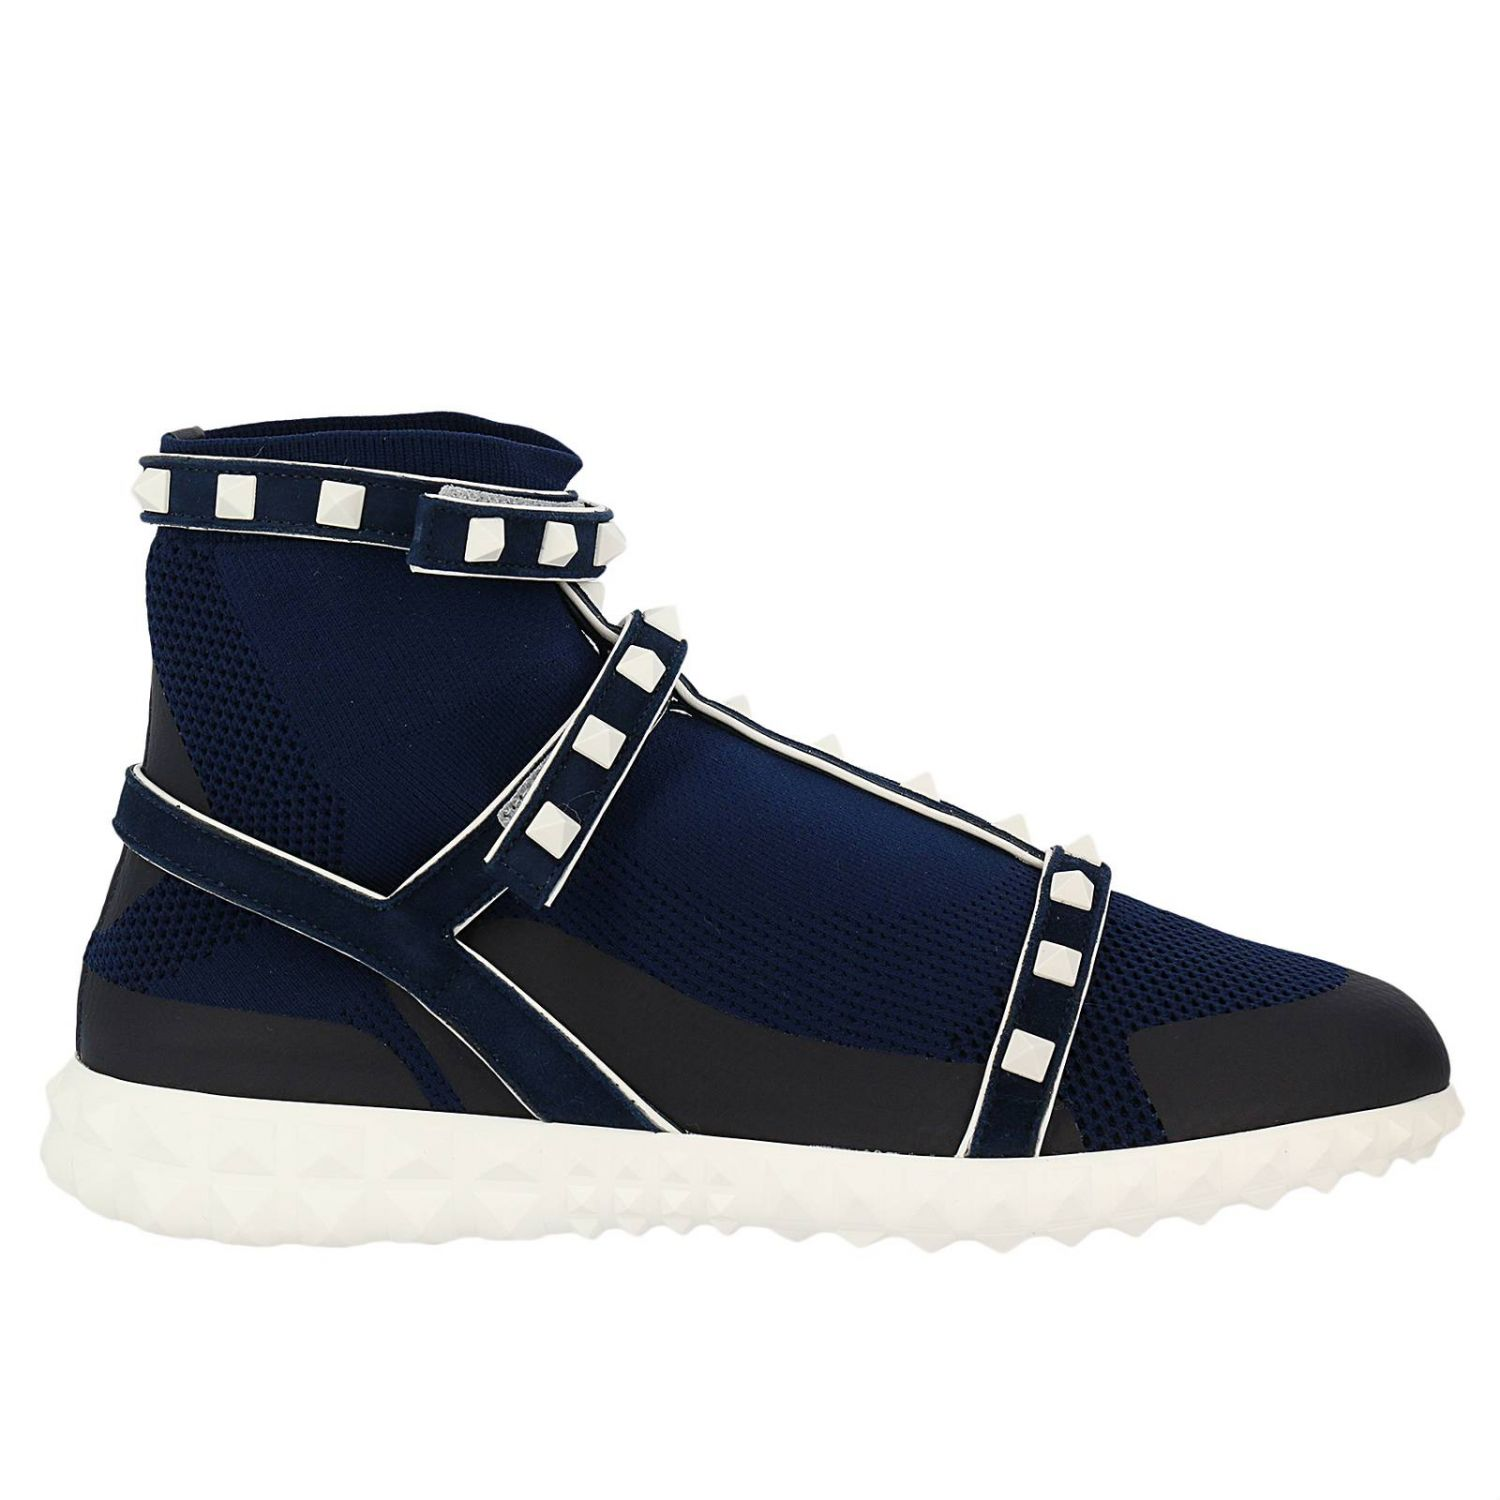 Sneakers Valentino Rockstud Bodytech Sneakers With Sock And Leather Bands With Contrasting Studs 8287039